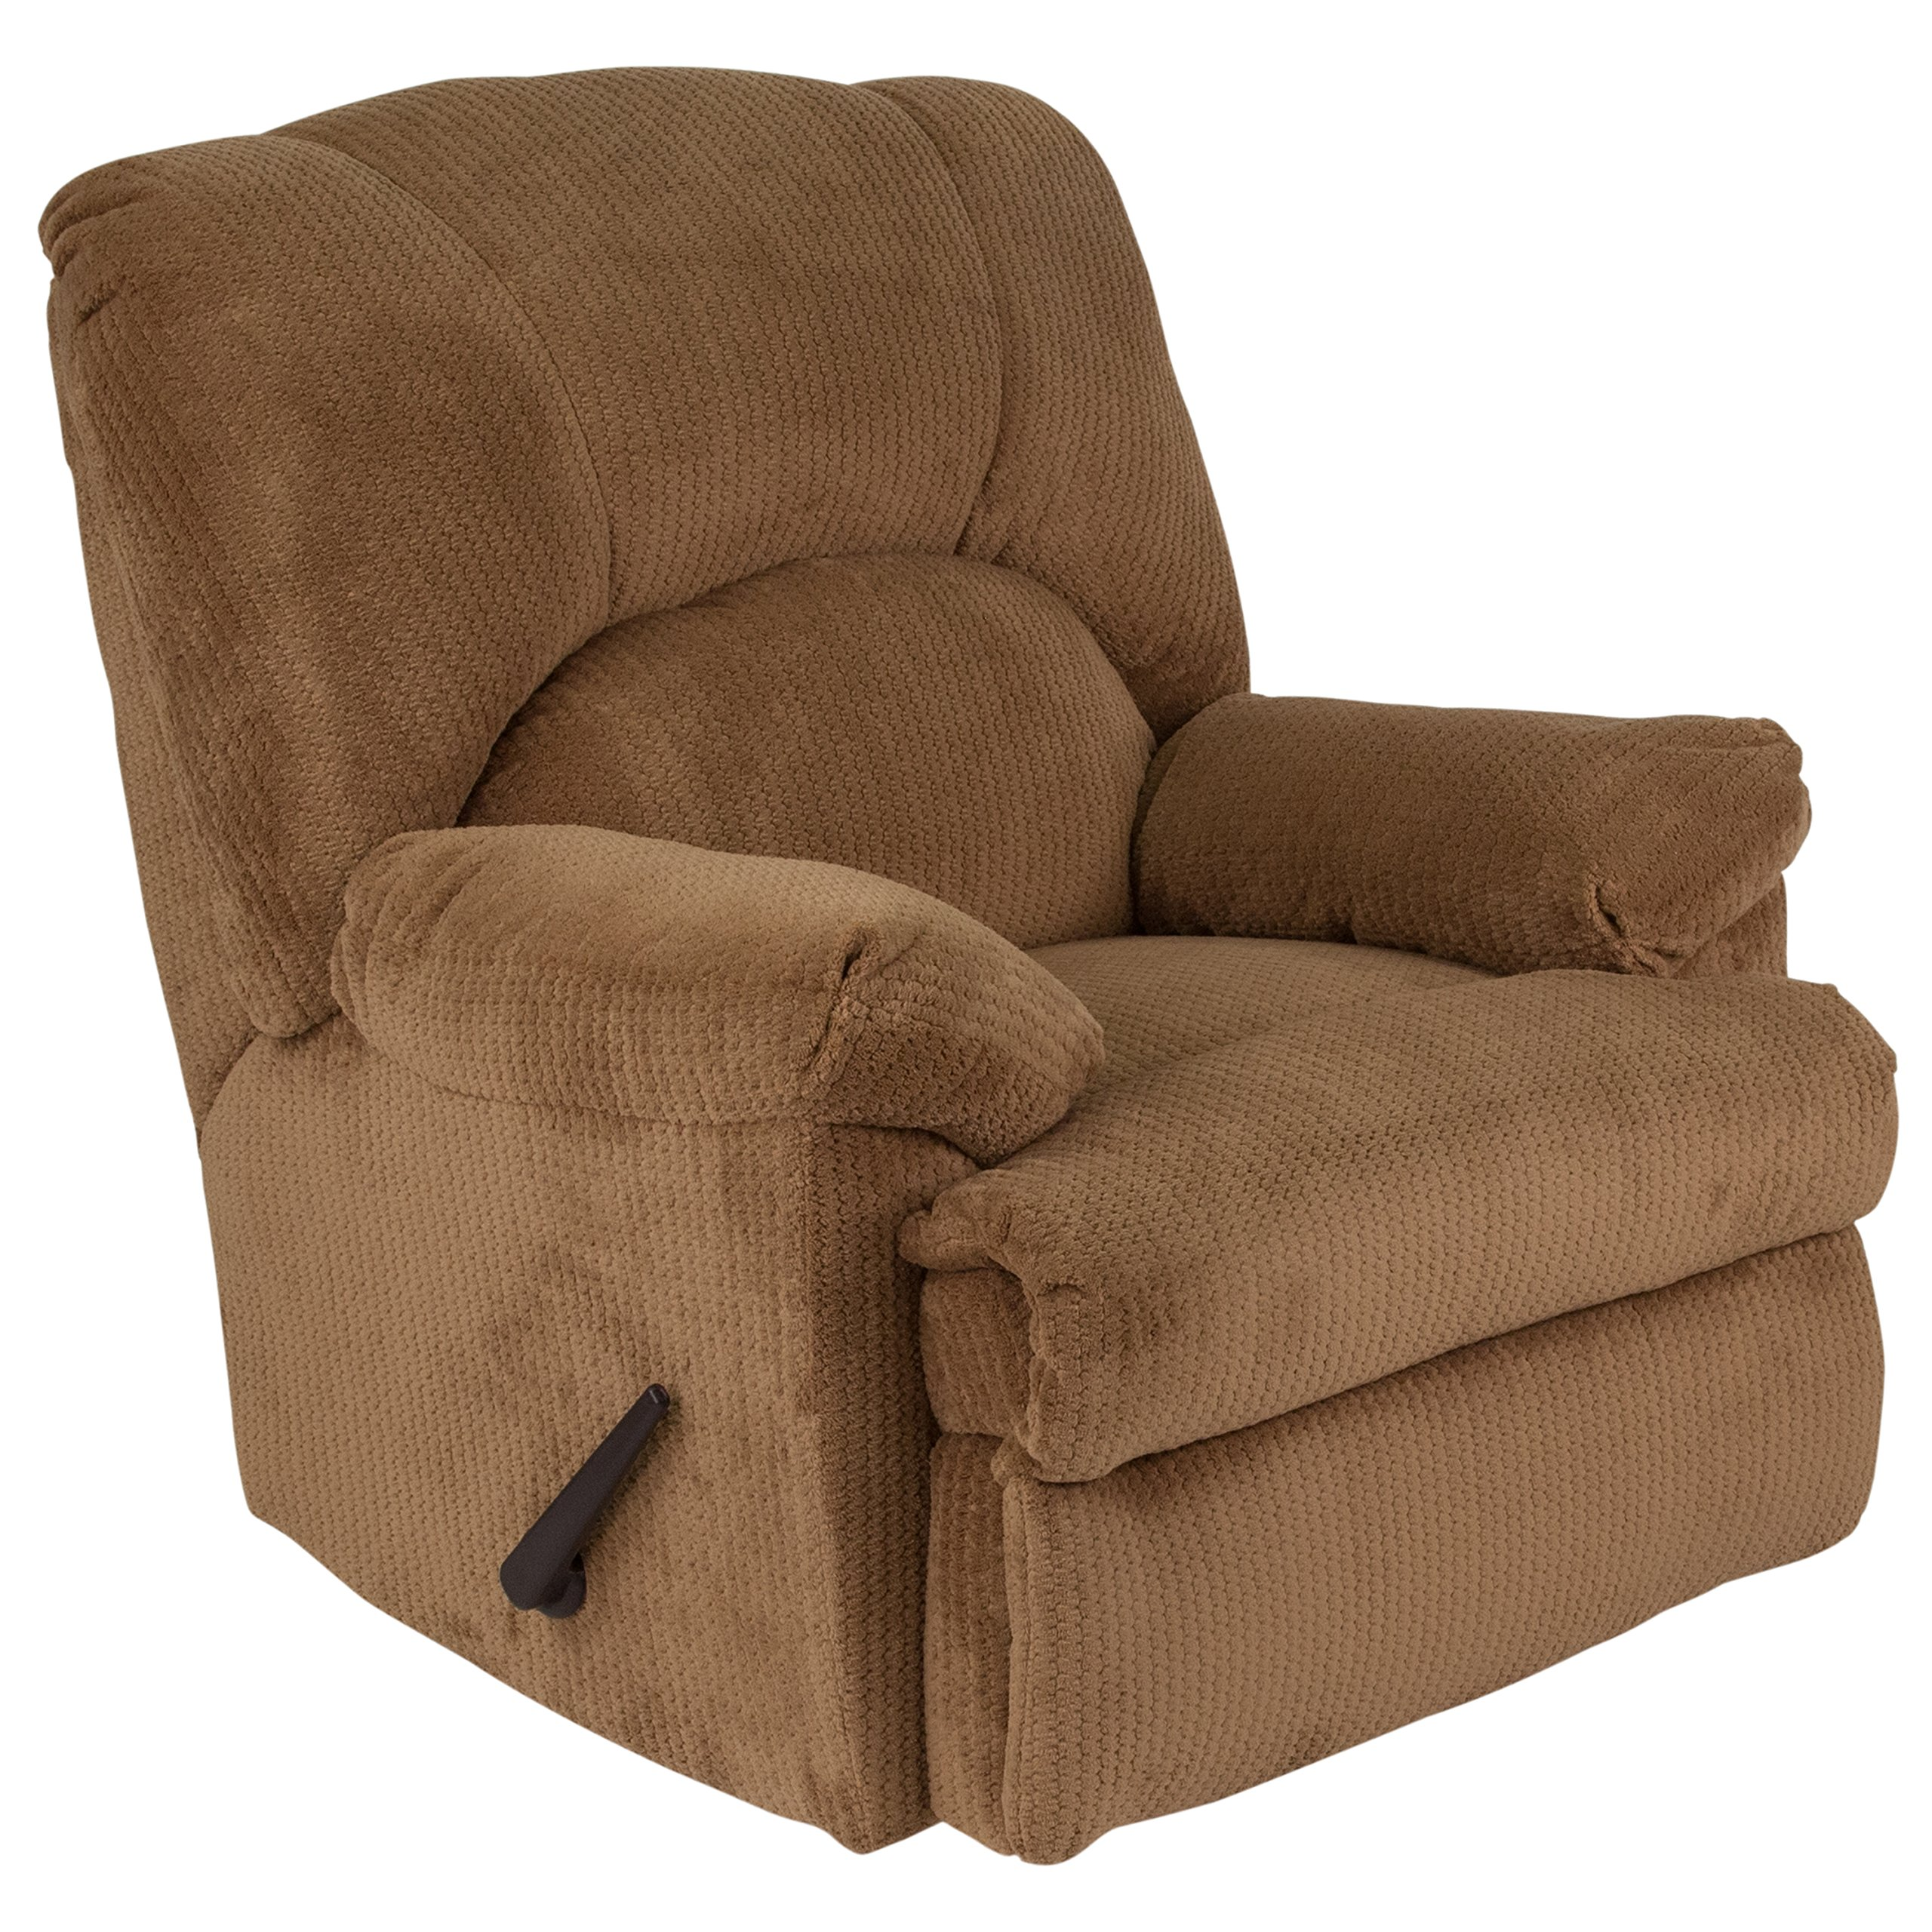 Flash Furniture Contemporary Feel Good Camel Microfiber Rocker Recliner by Flash Furniture